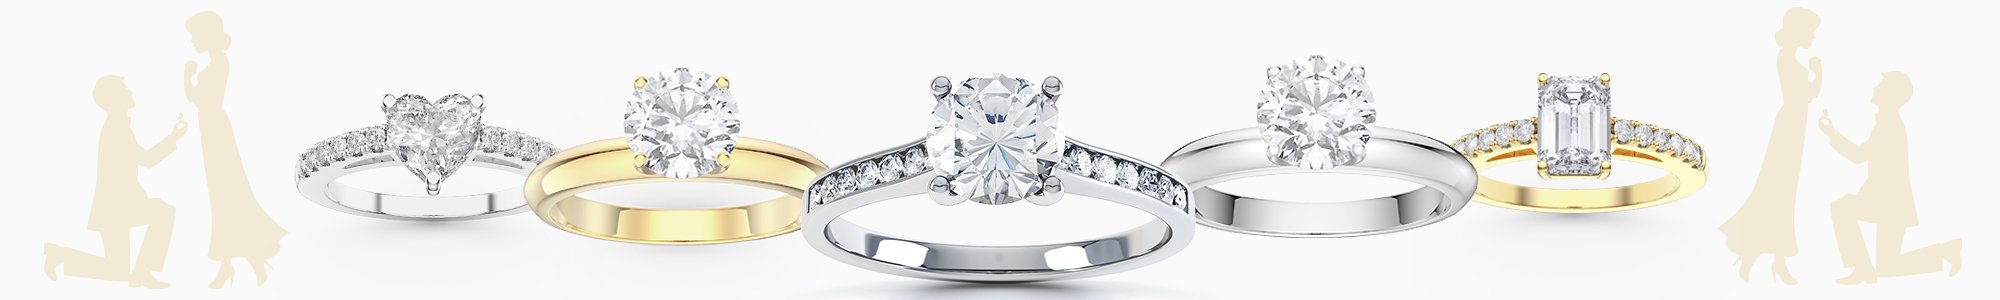 Shop Engagement Rings by Jian London. Buy direct and save from our wide selection of engagement rings at the Jian London Jewellery Store. Free UK Delivery.